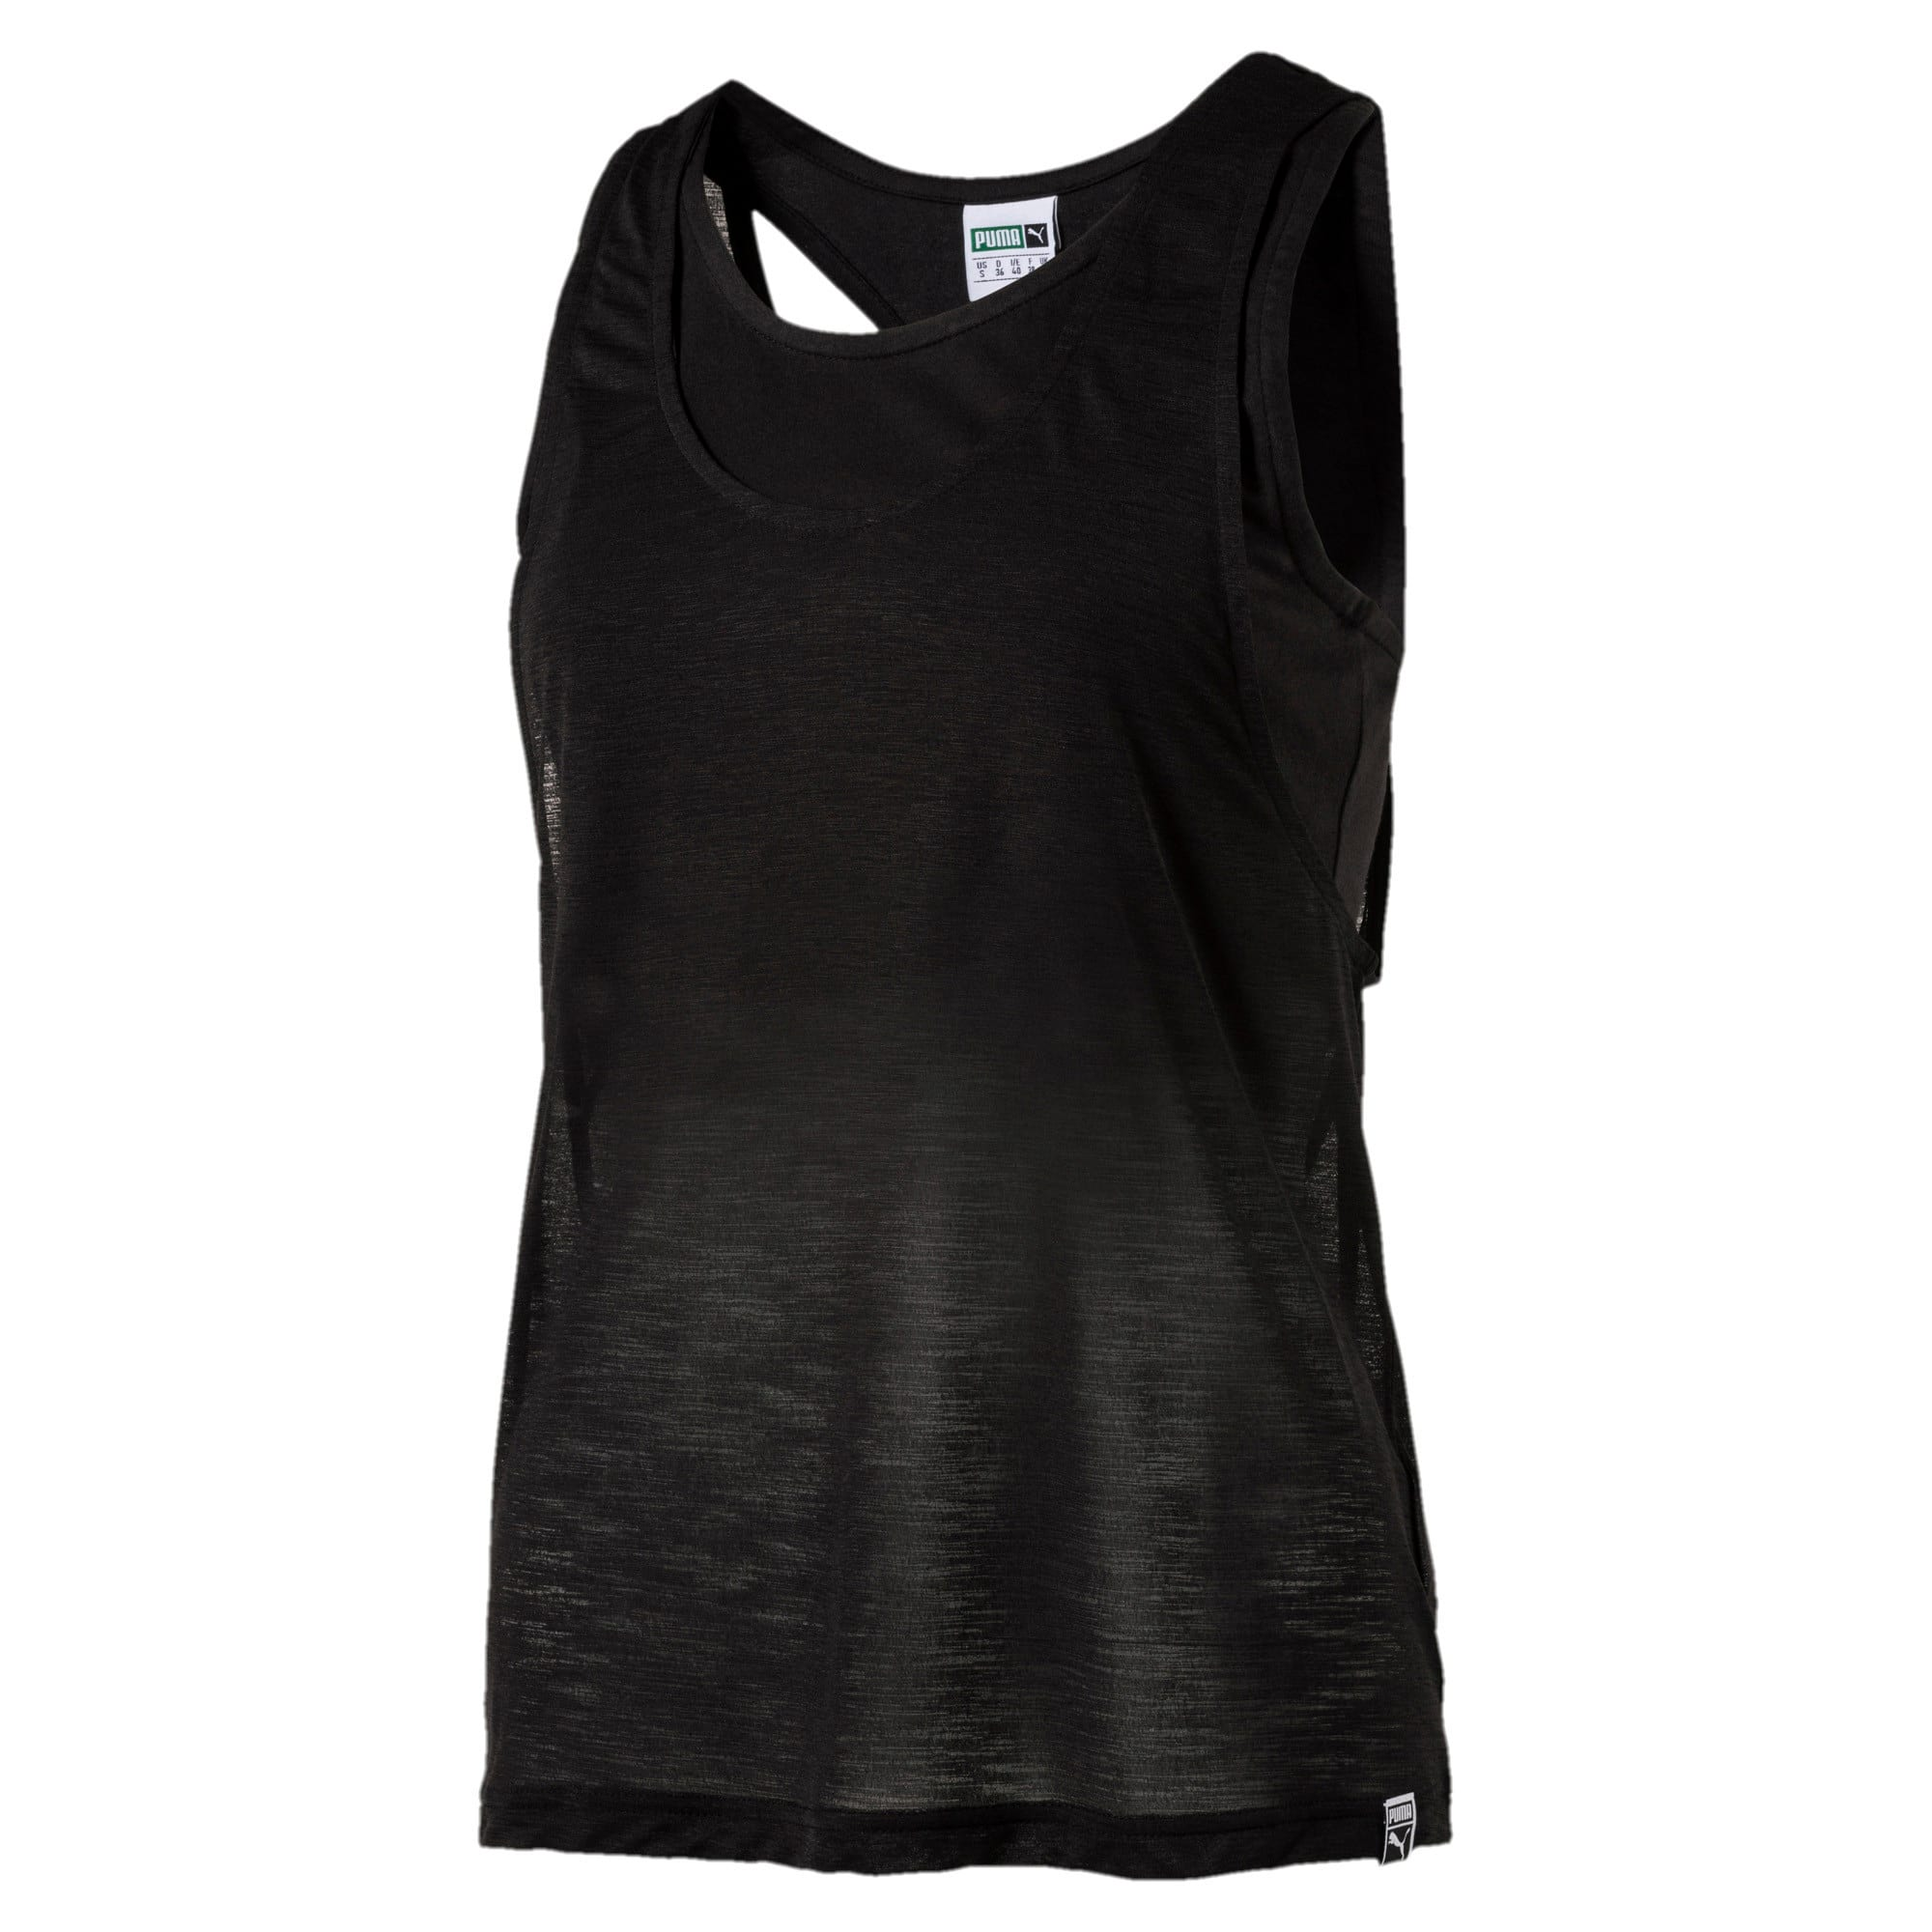 Thumbnail 2 of Archive Women's Overlay Tank Top, Puma Black, medium-IND